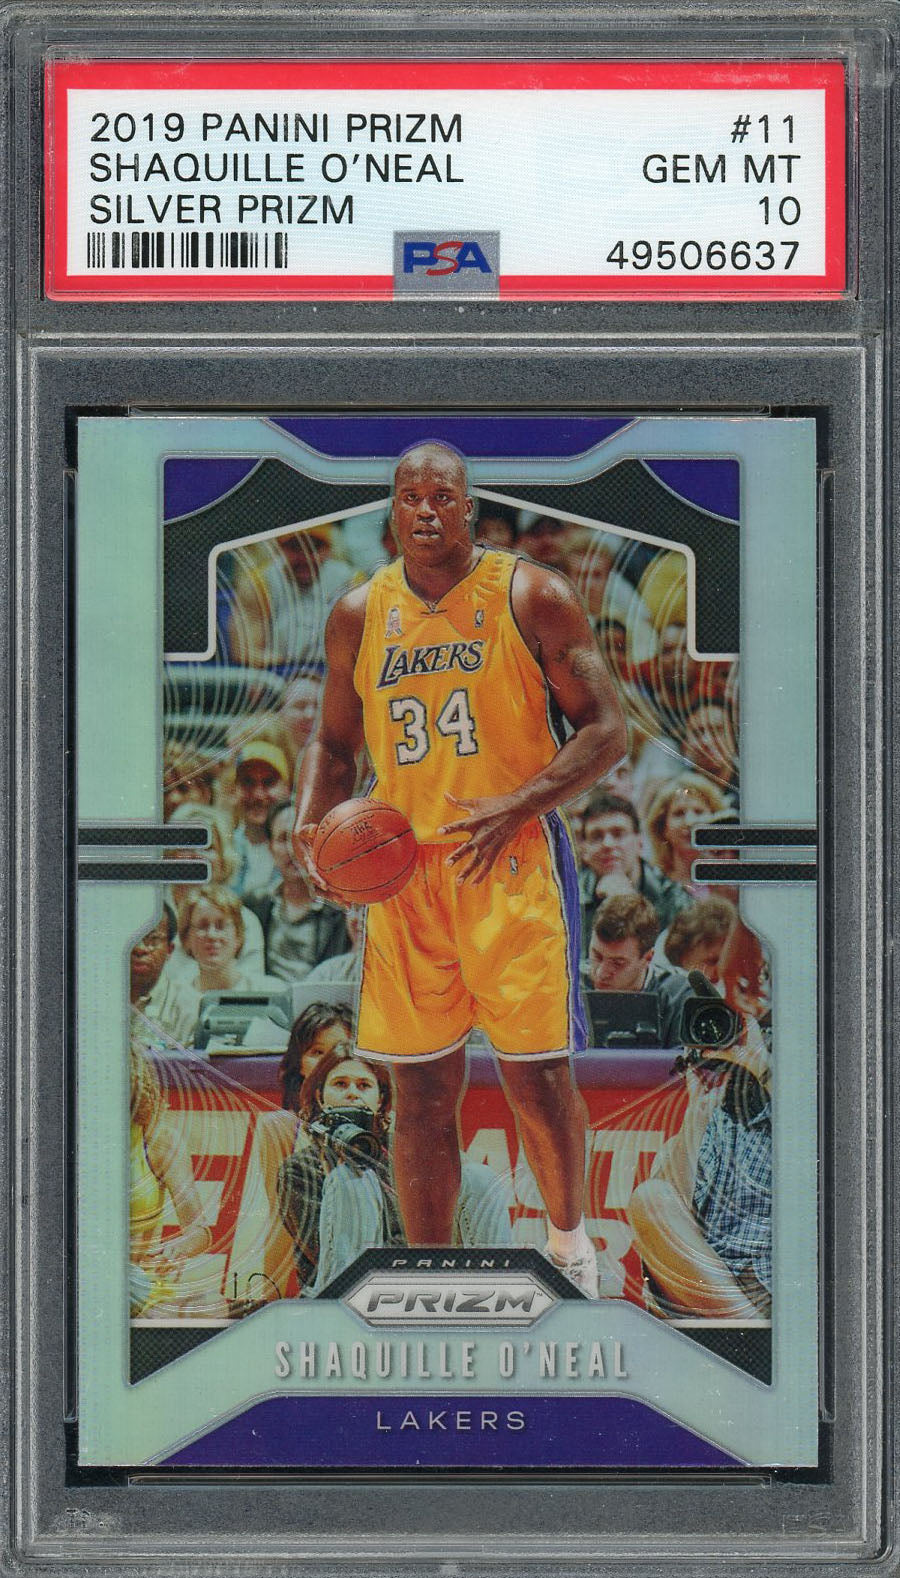 Shaquille O'Neal Los Angeles Lakers 2019 Panini Prizm Basketball Card #11 Graded PSA 10 GEM MINT-Powers Sports Memorabilia